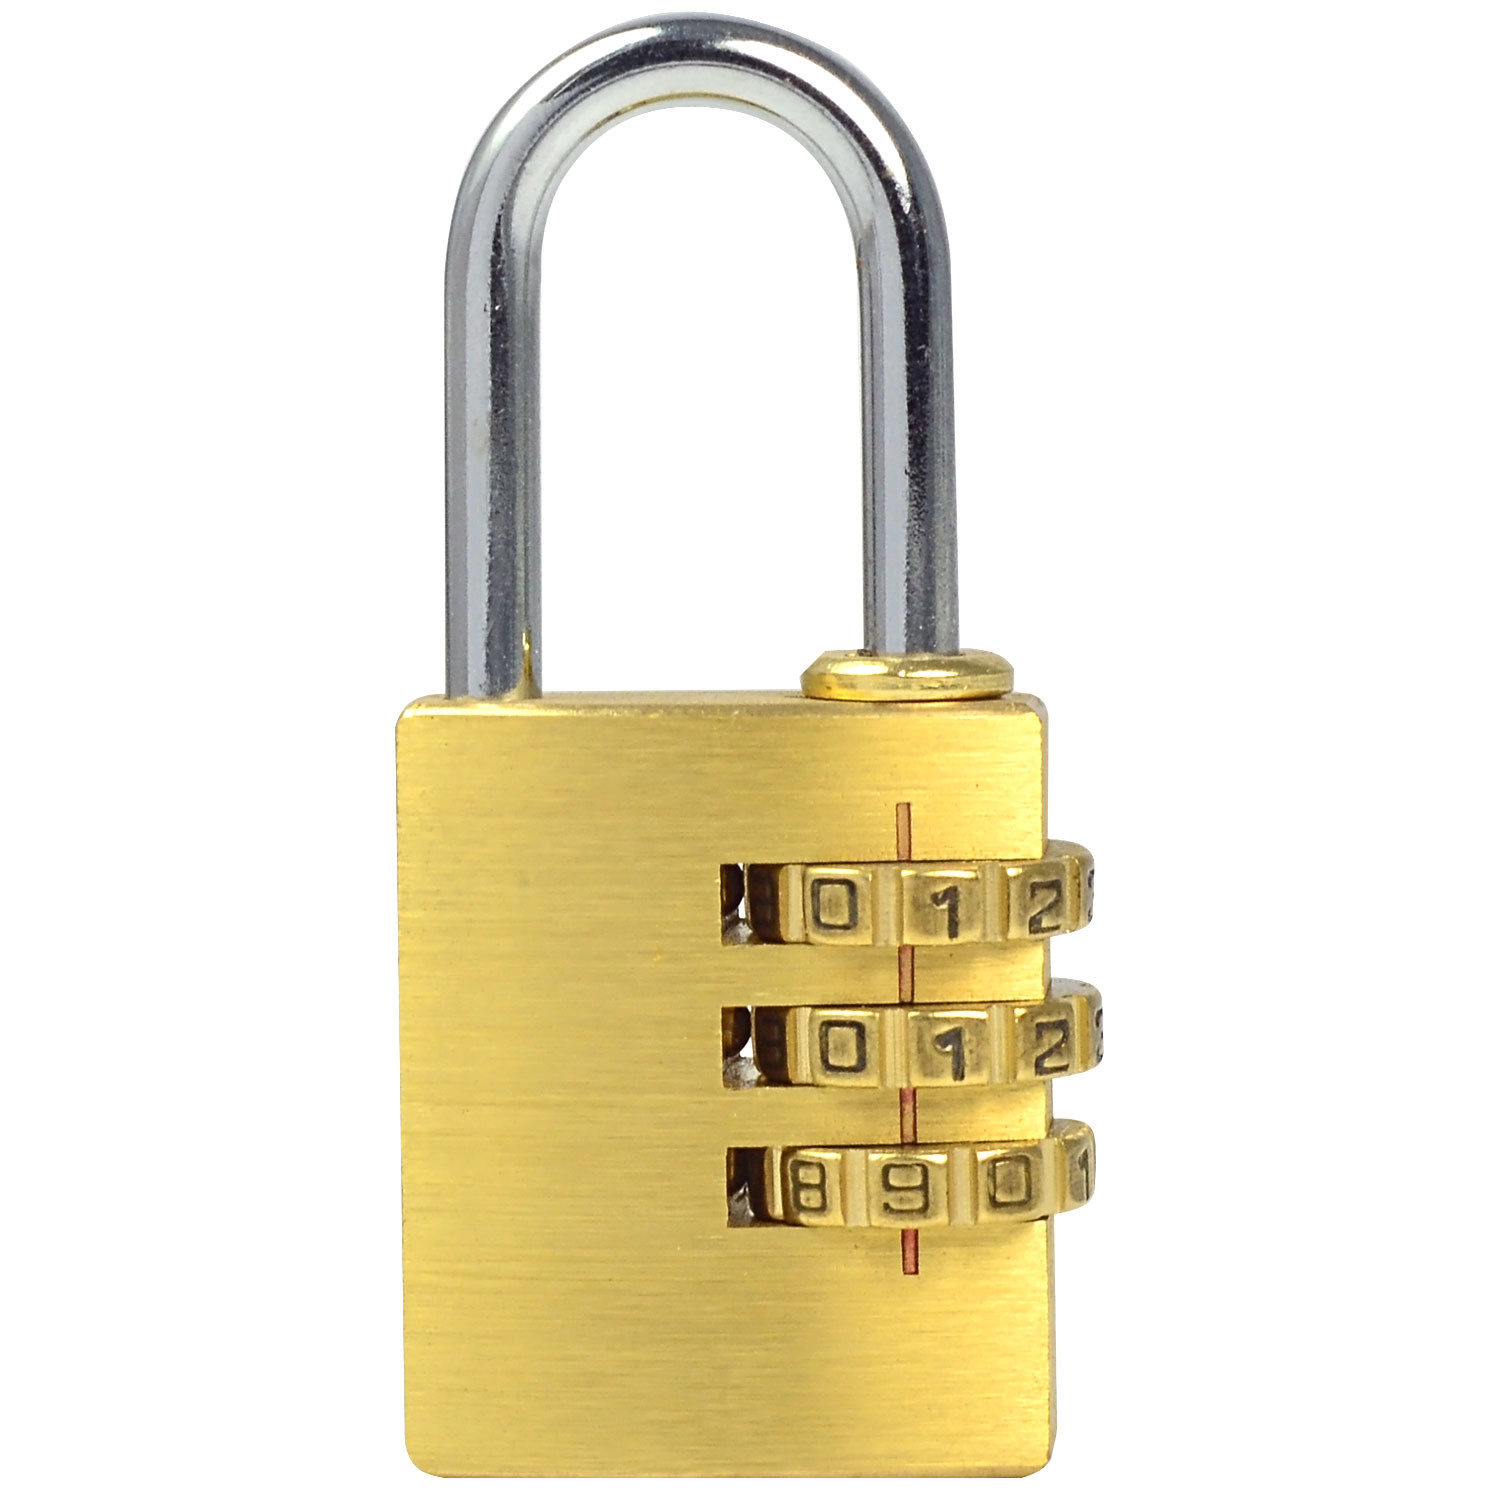 Traveltime Combination Lock 545 Silver Studio Tas Source MENGS MG253 Full Brass Combination .